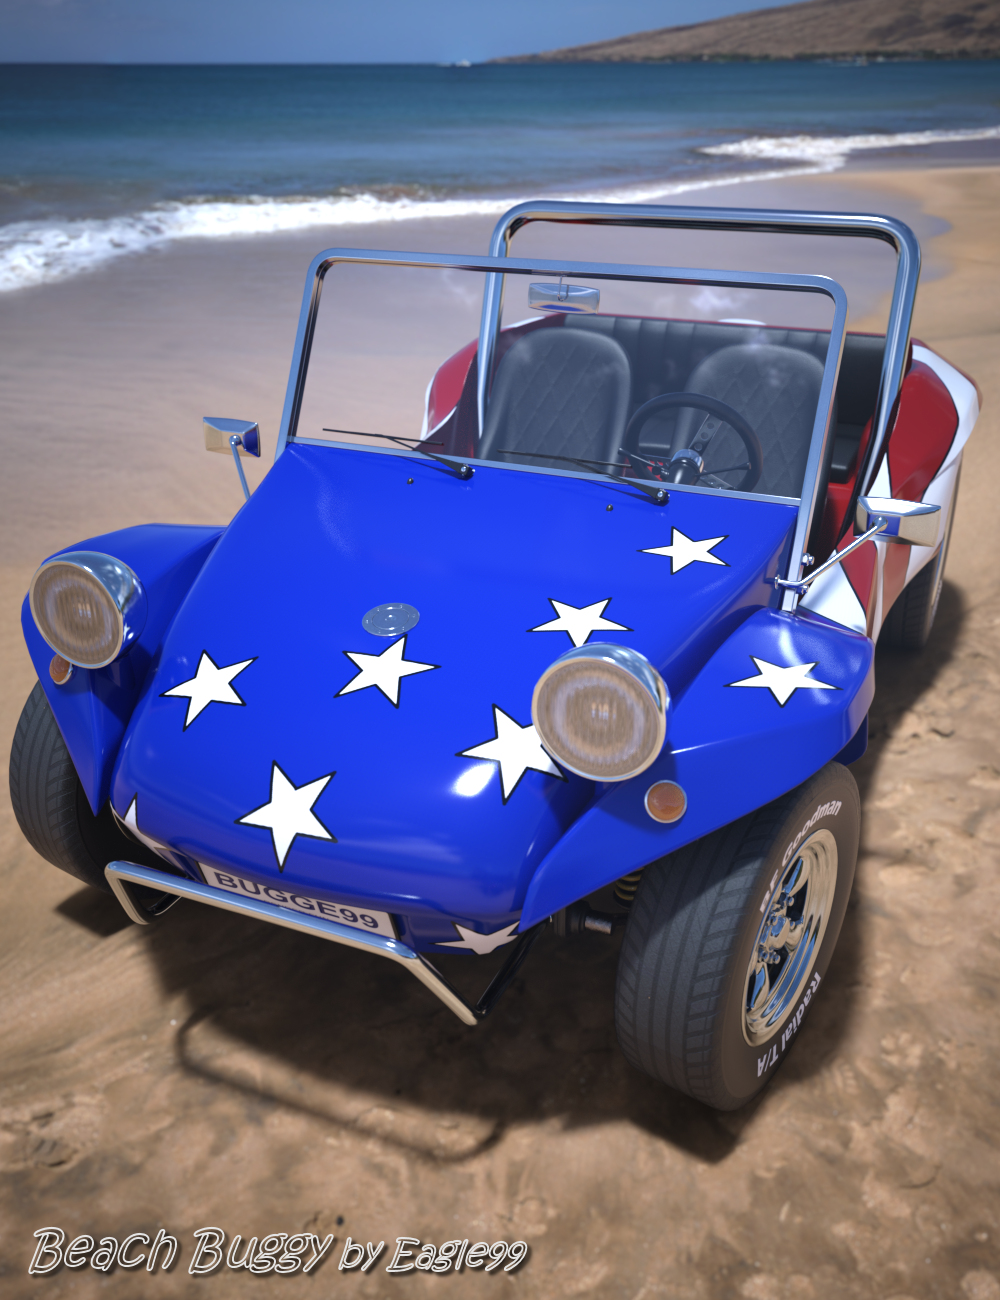 Beach Buggy by: Eagle99, 3D Models by Daz 3D